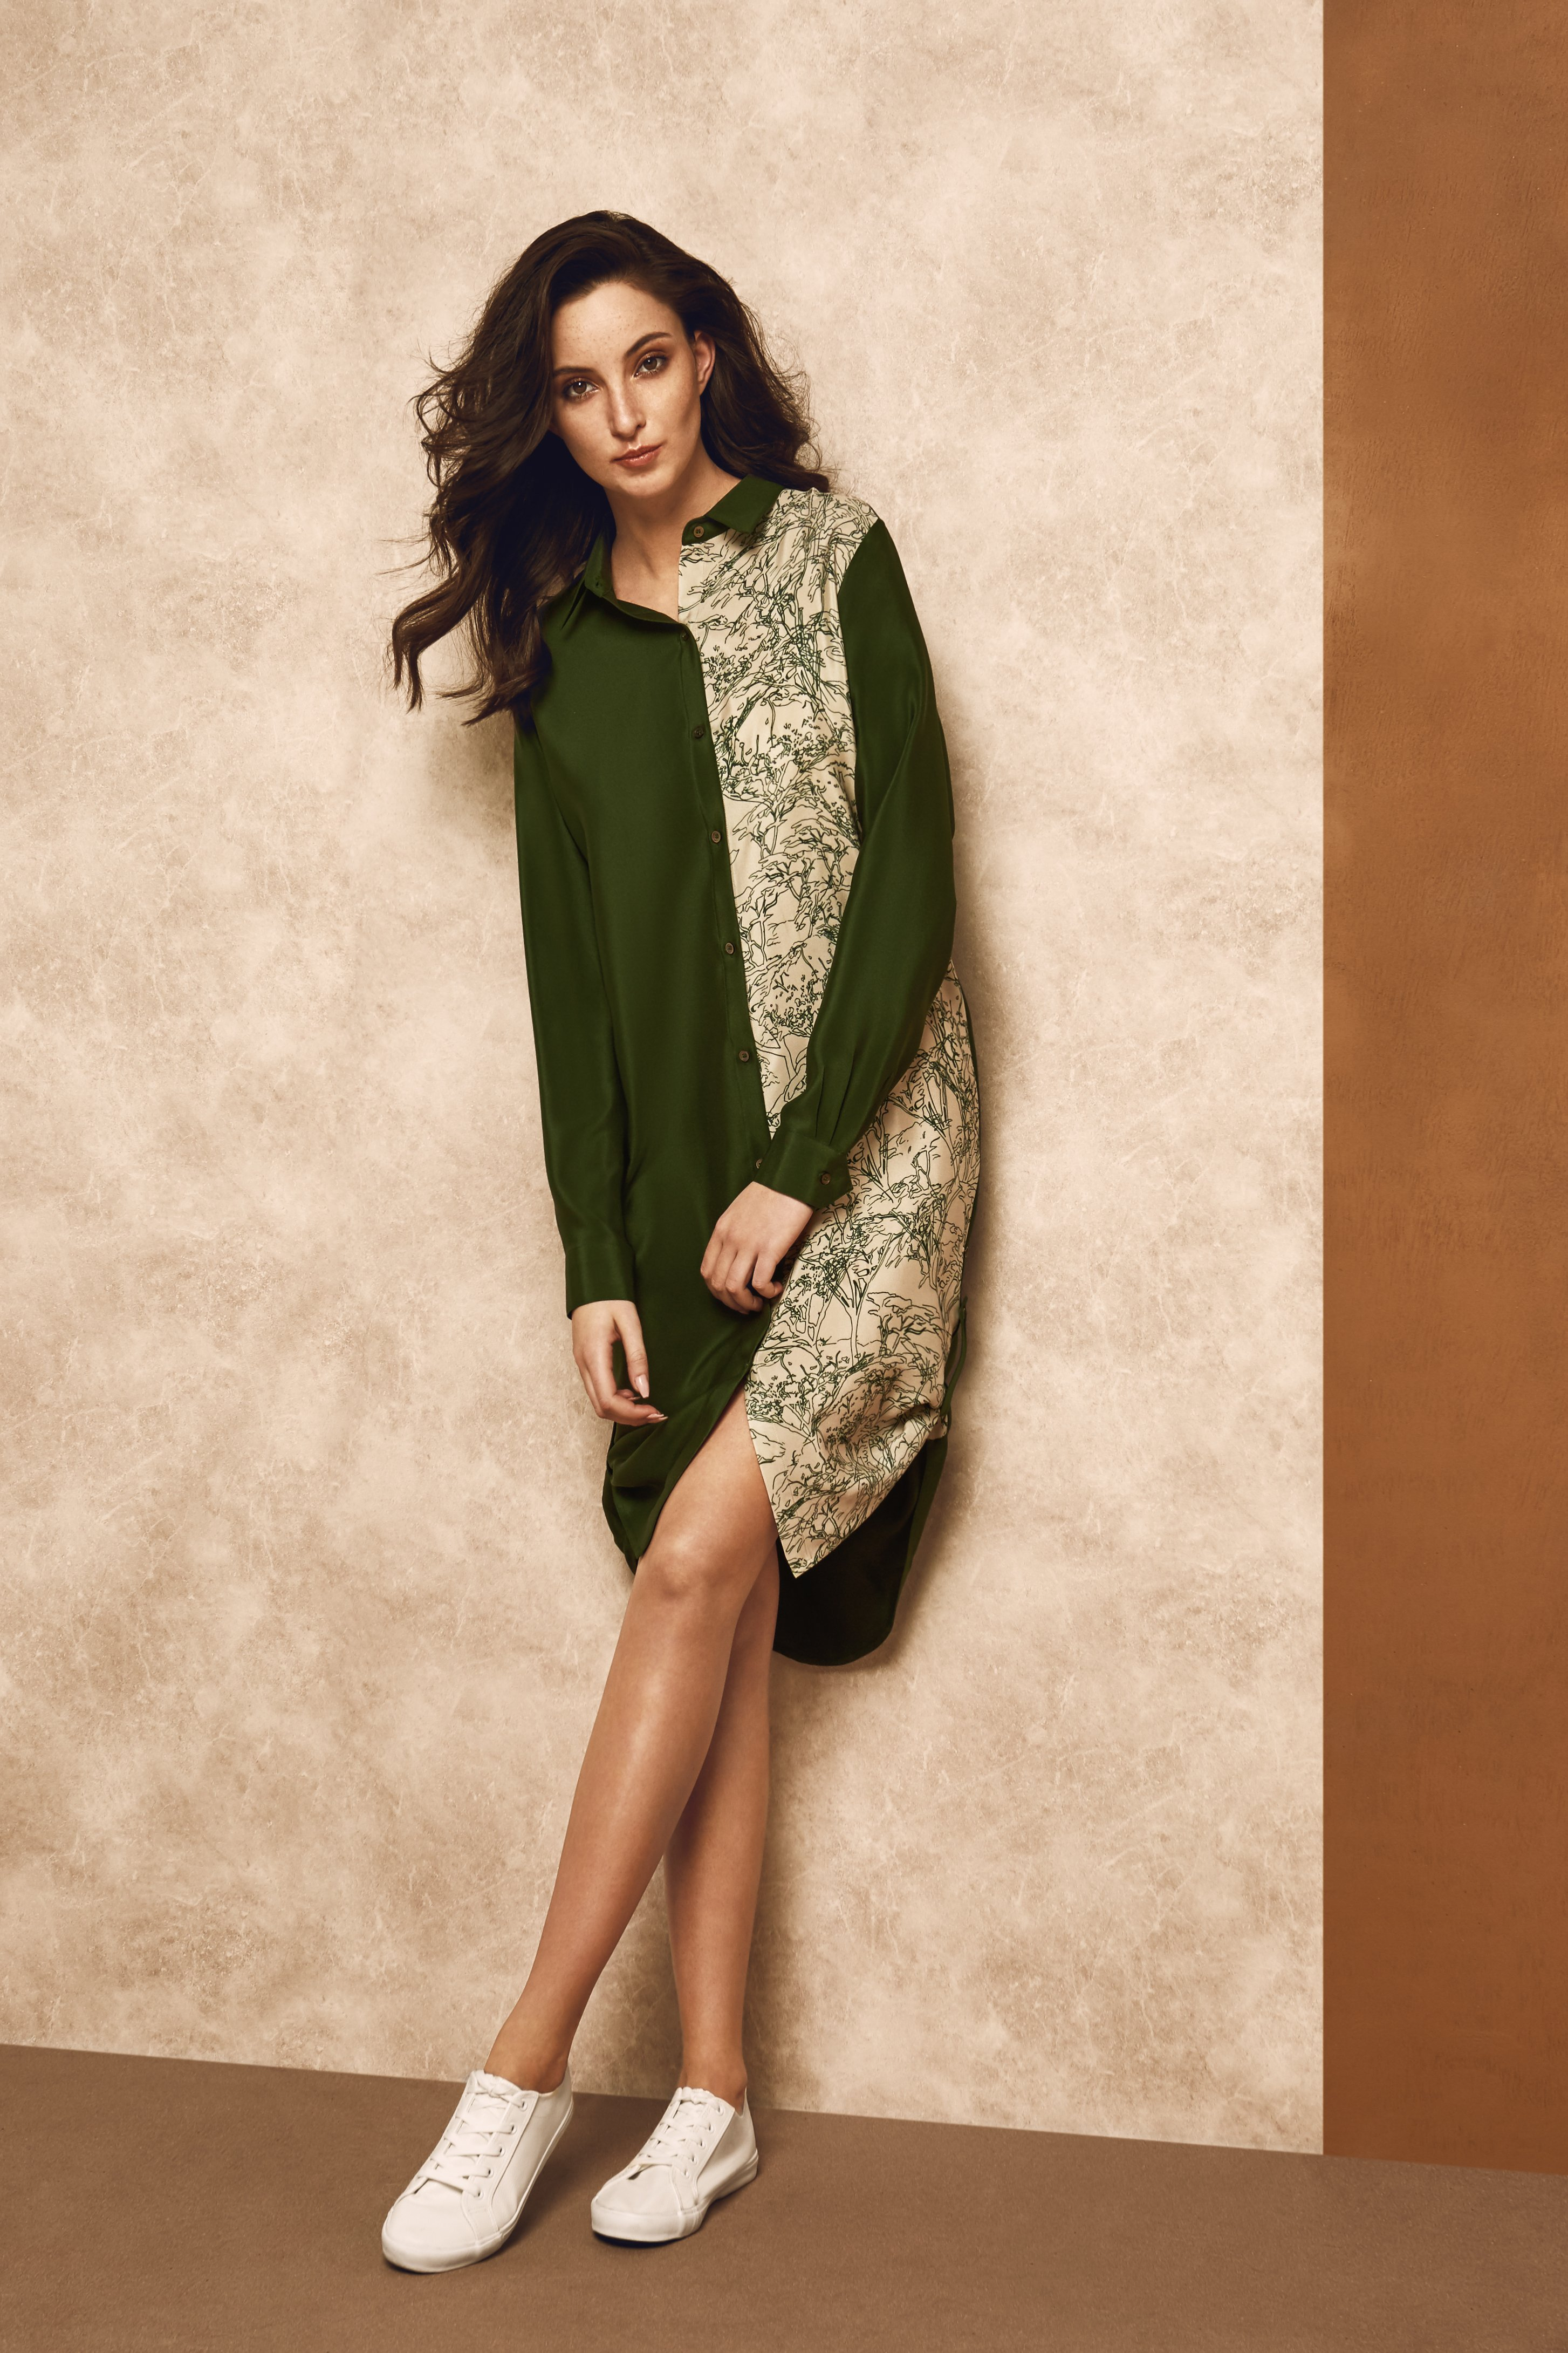 Directional Yet Demure Clothing For The Cool Modern Woman: Contemporary Womenswear Label 'Twisted Roots' Presents The